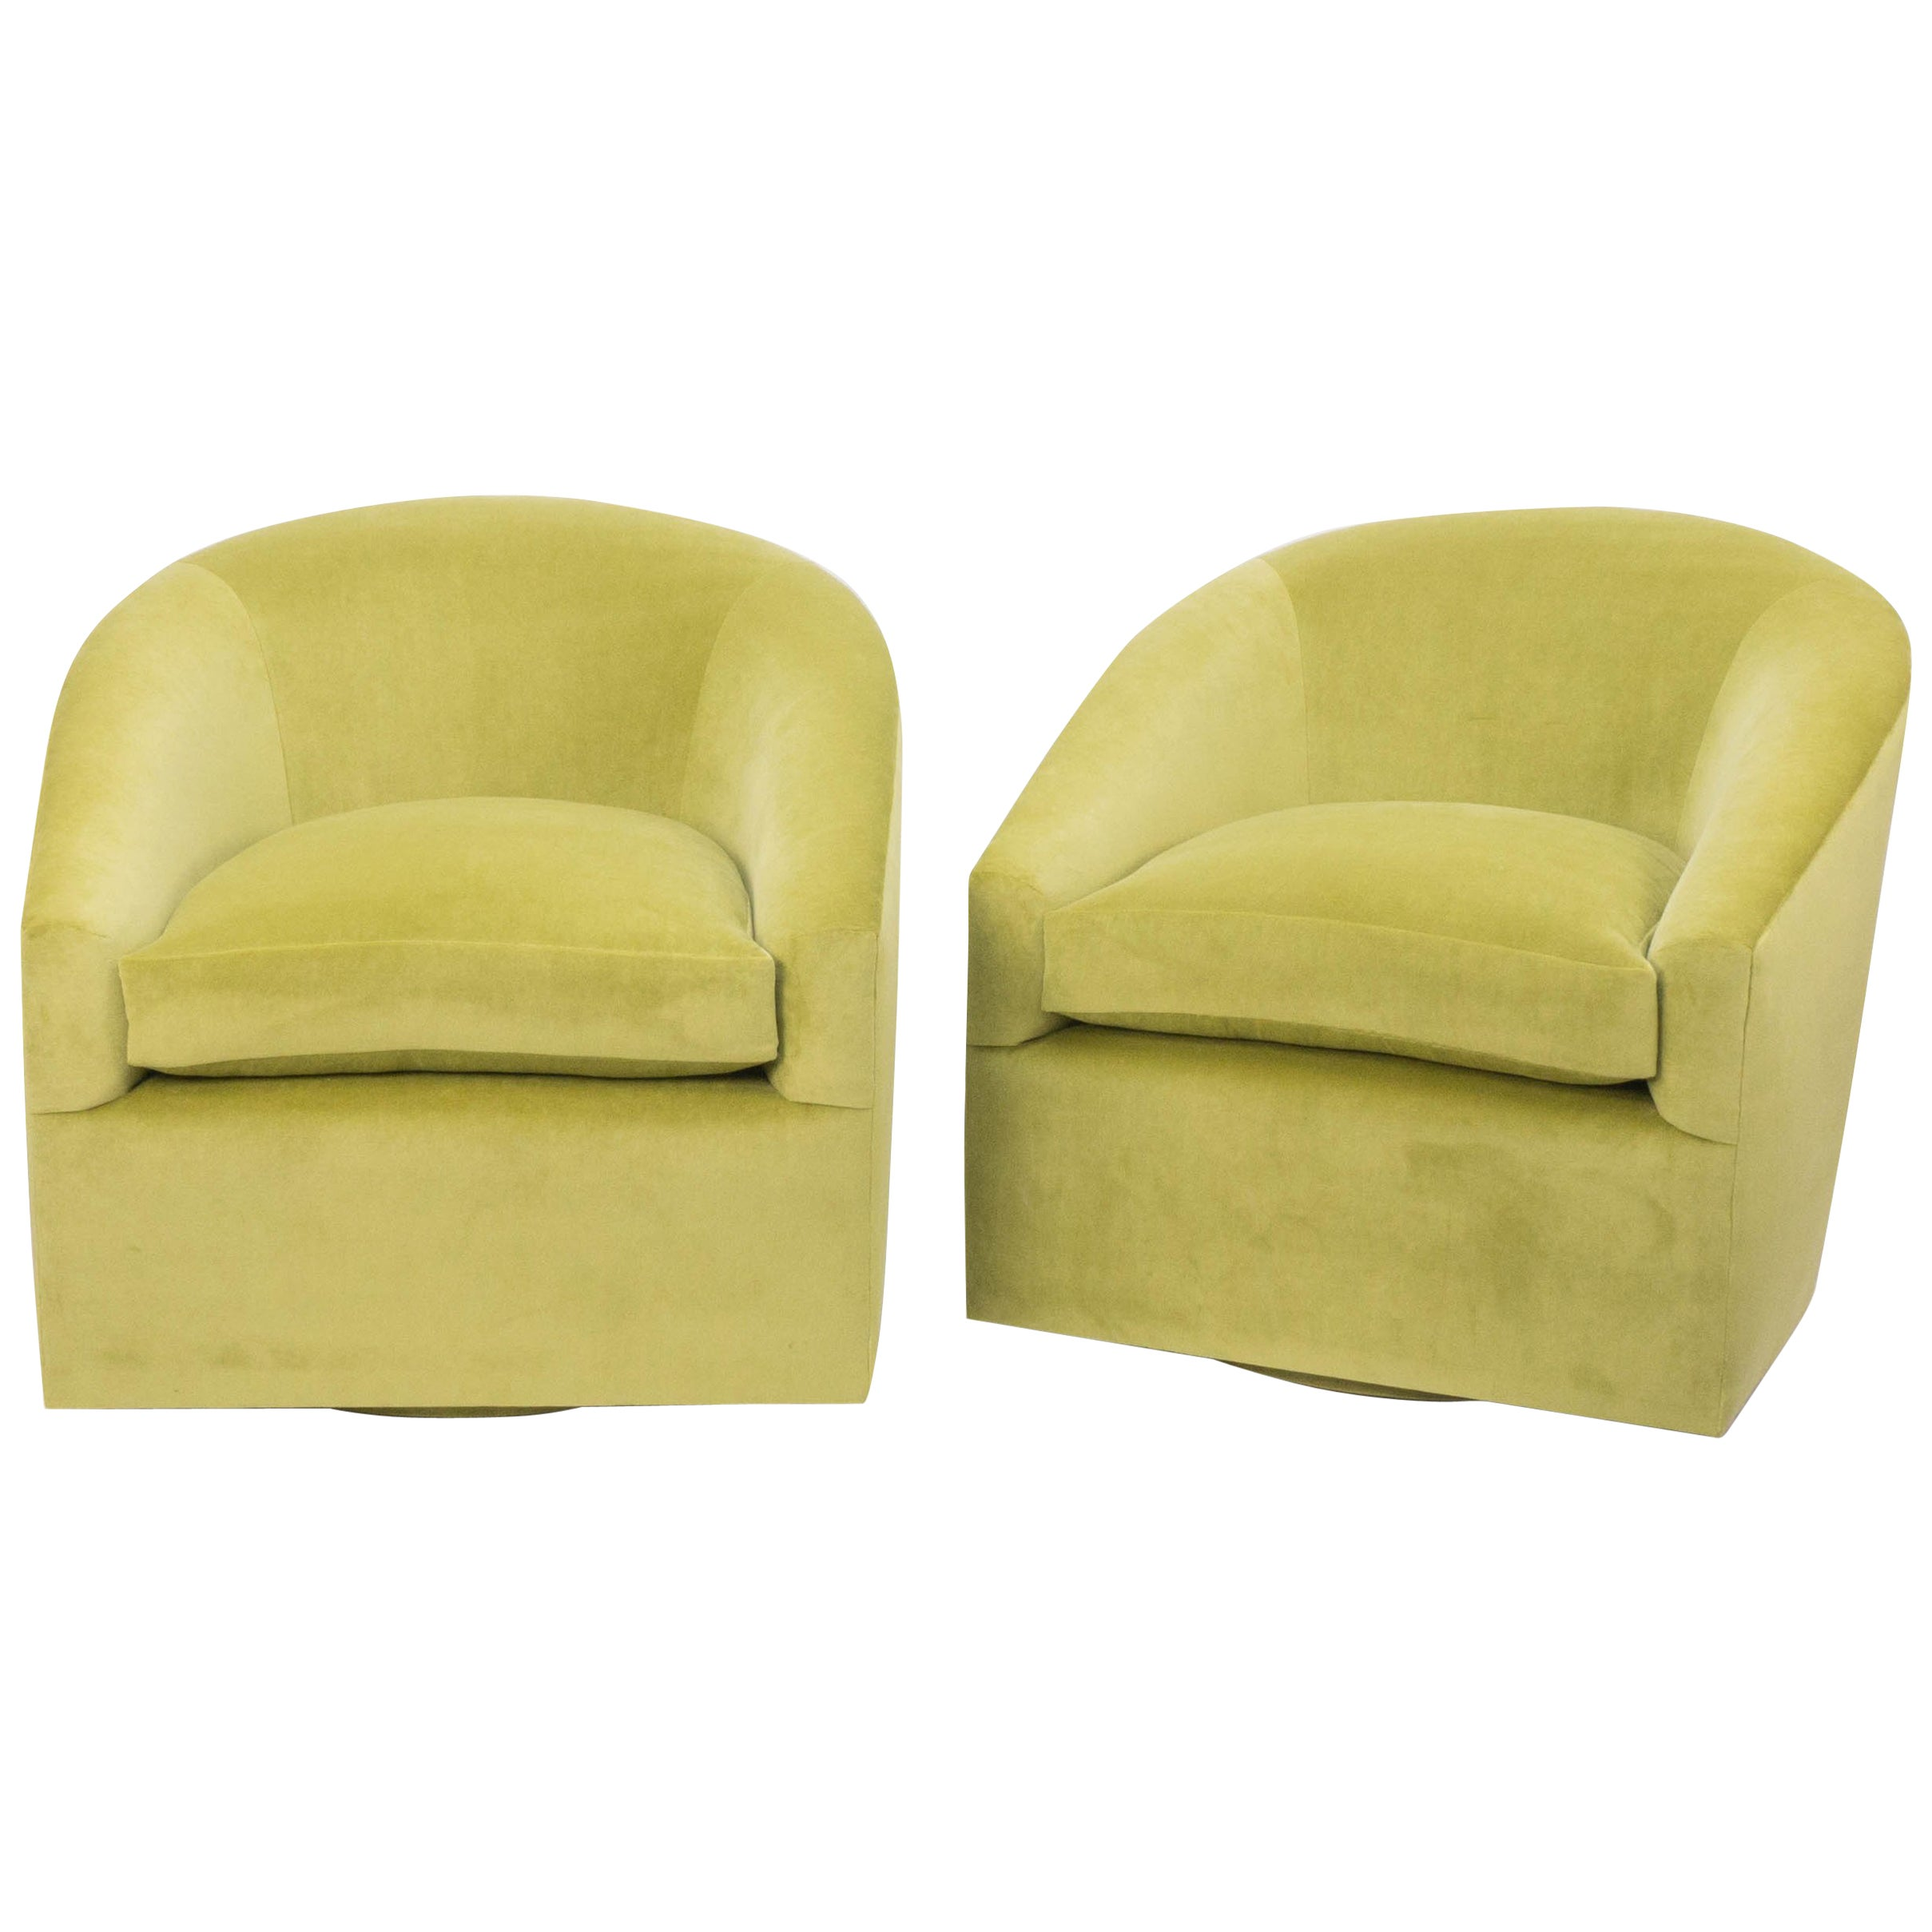 Lime Green Chairs Modern Swivel Chair In Lime Green Velvet